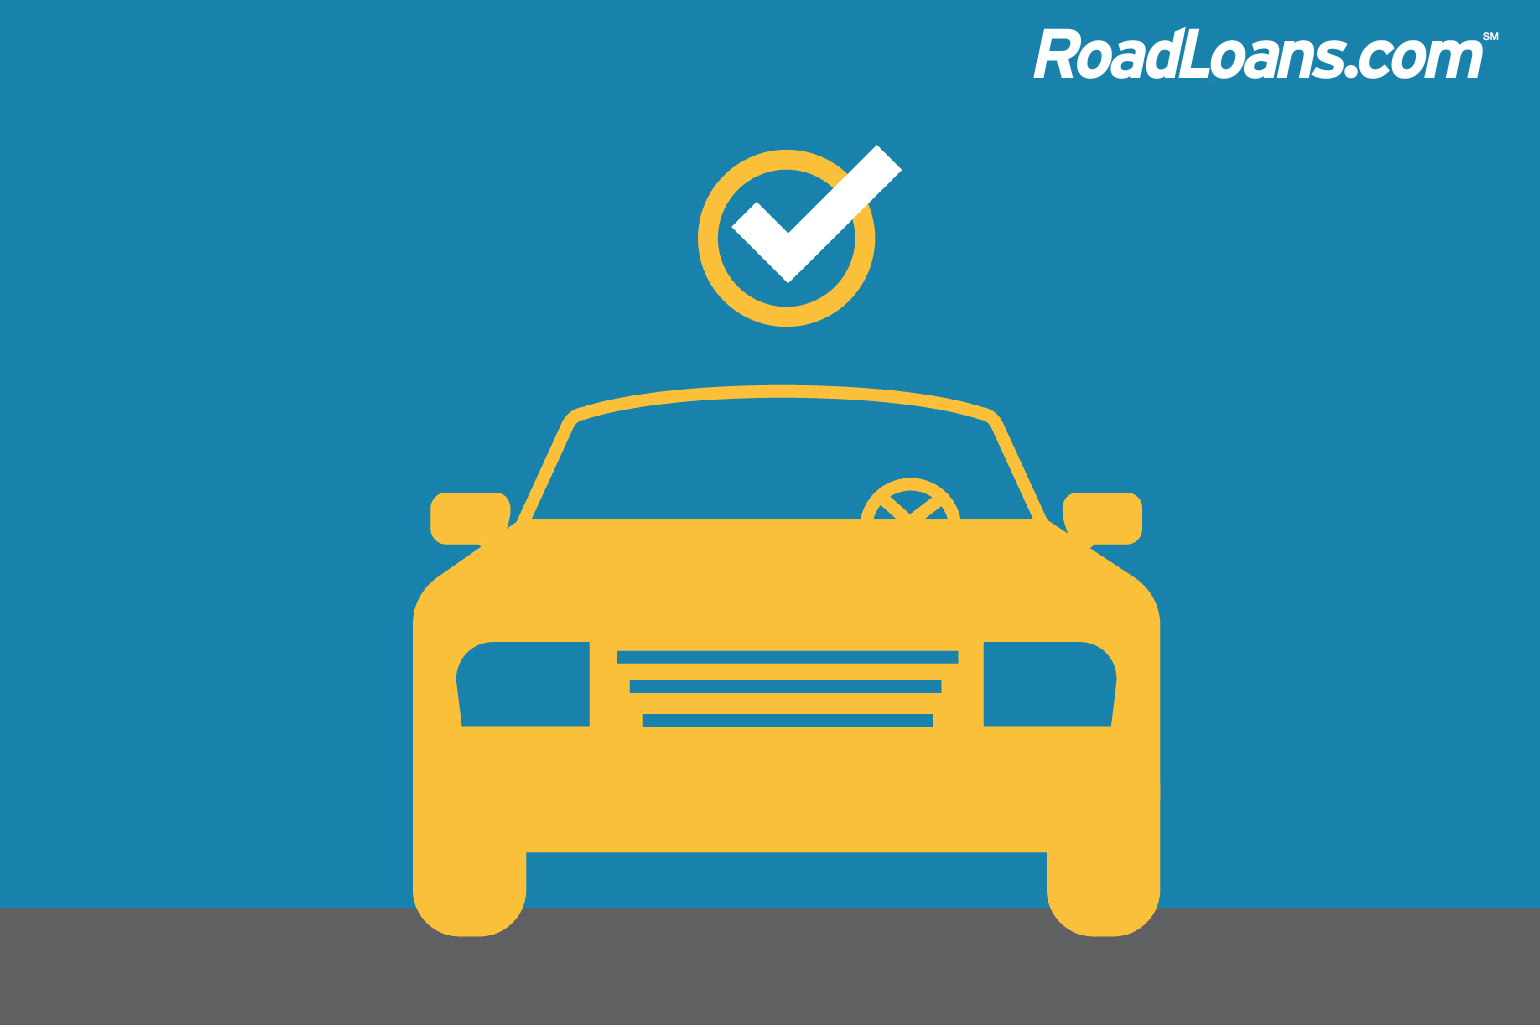 Preapproved Car Loans Give Shoppers an Advantage | RoadLoans